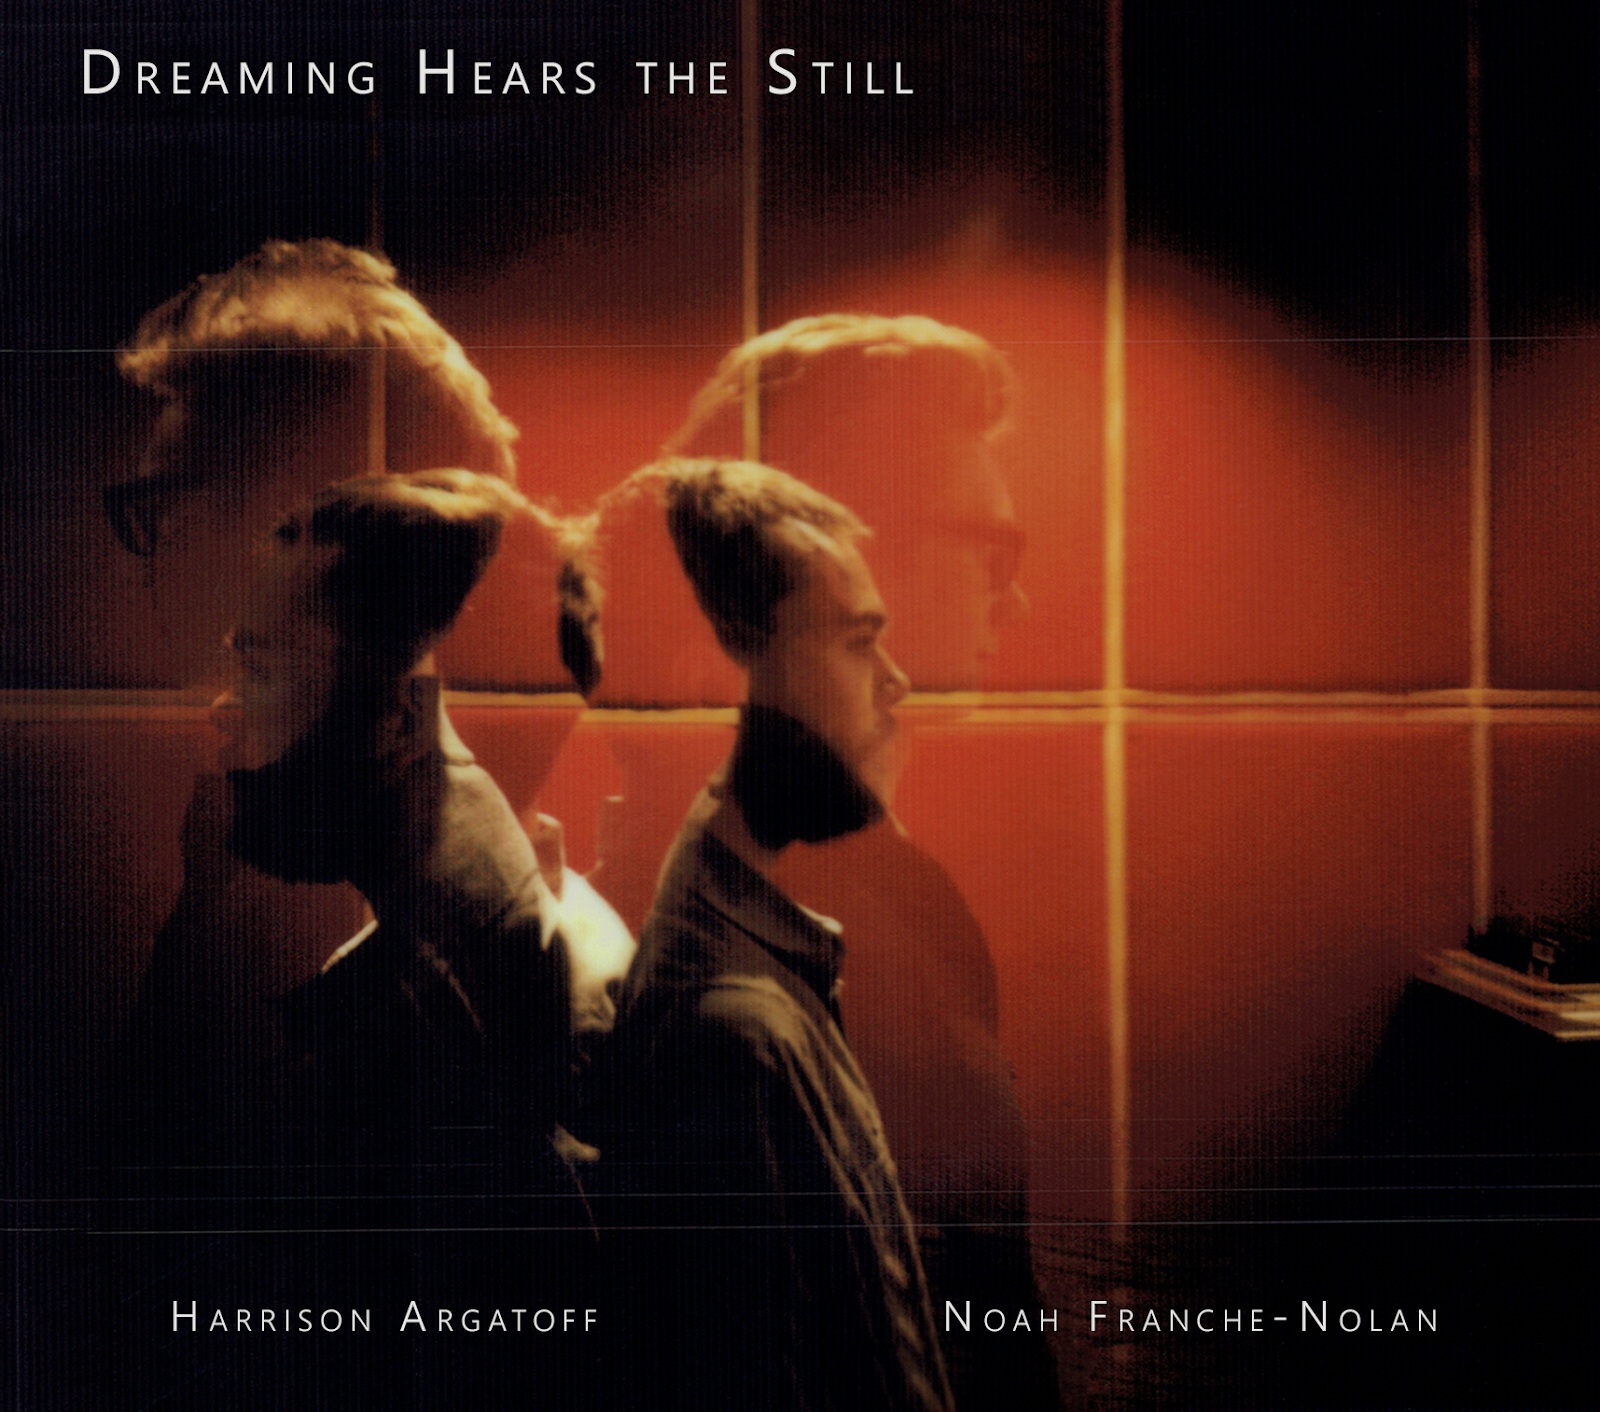 Dreaming+Hears+the+Still+Cover.jpg